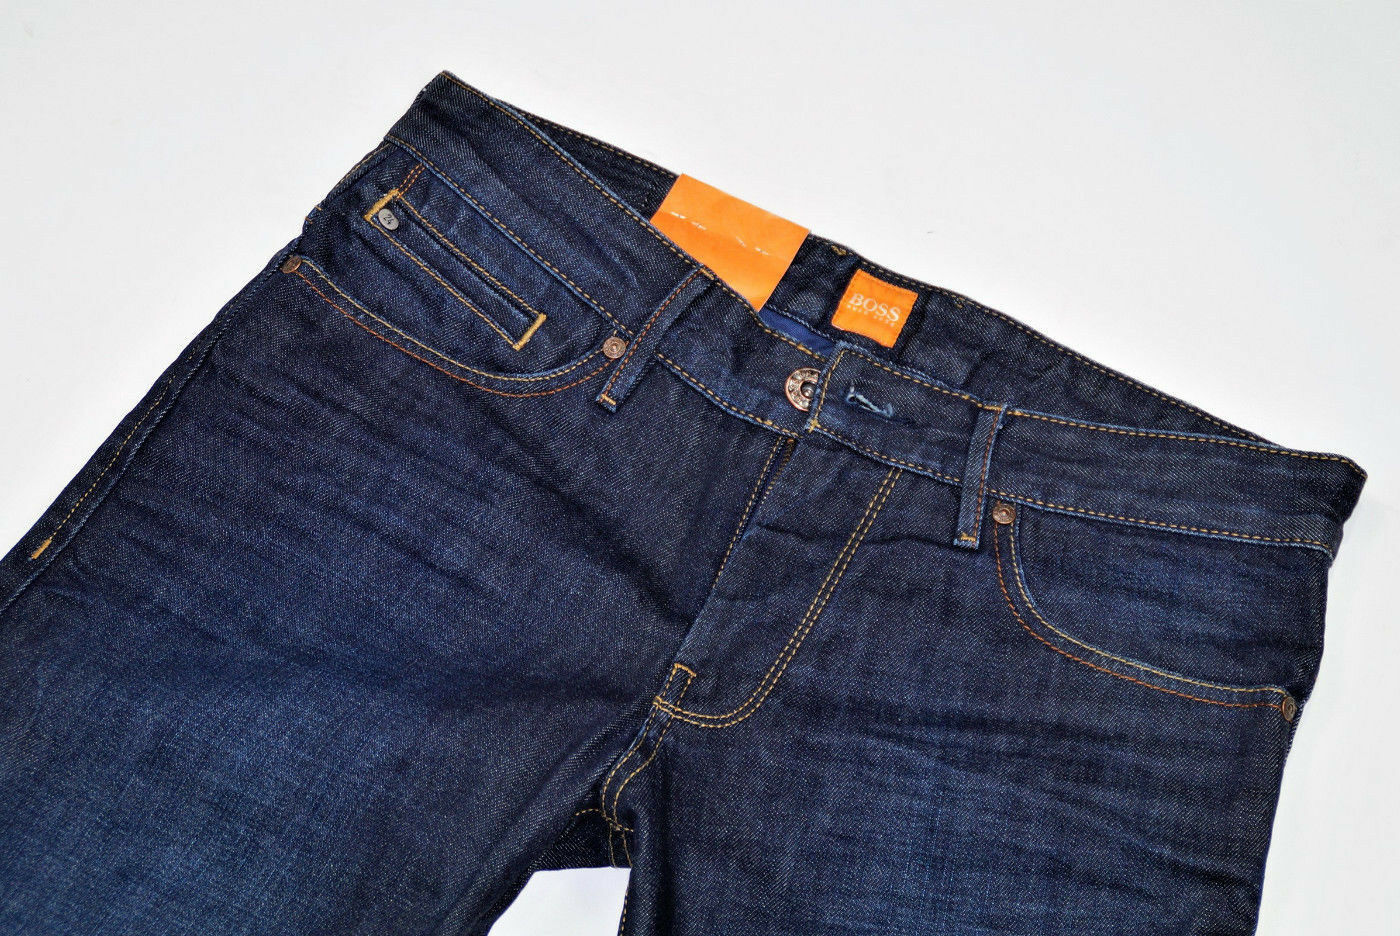 Hugo Boss-w31 l34-naranja 24  barcelona Moonlight-regular fit jeans 31 34  diseñador en linea